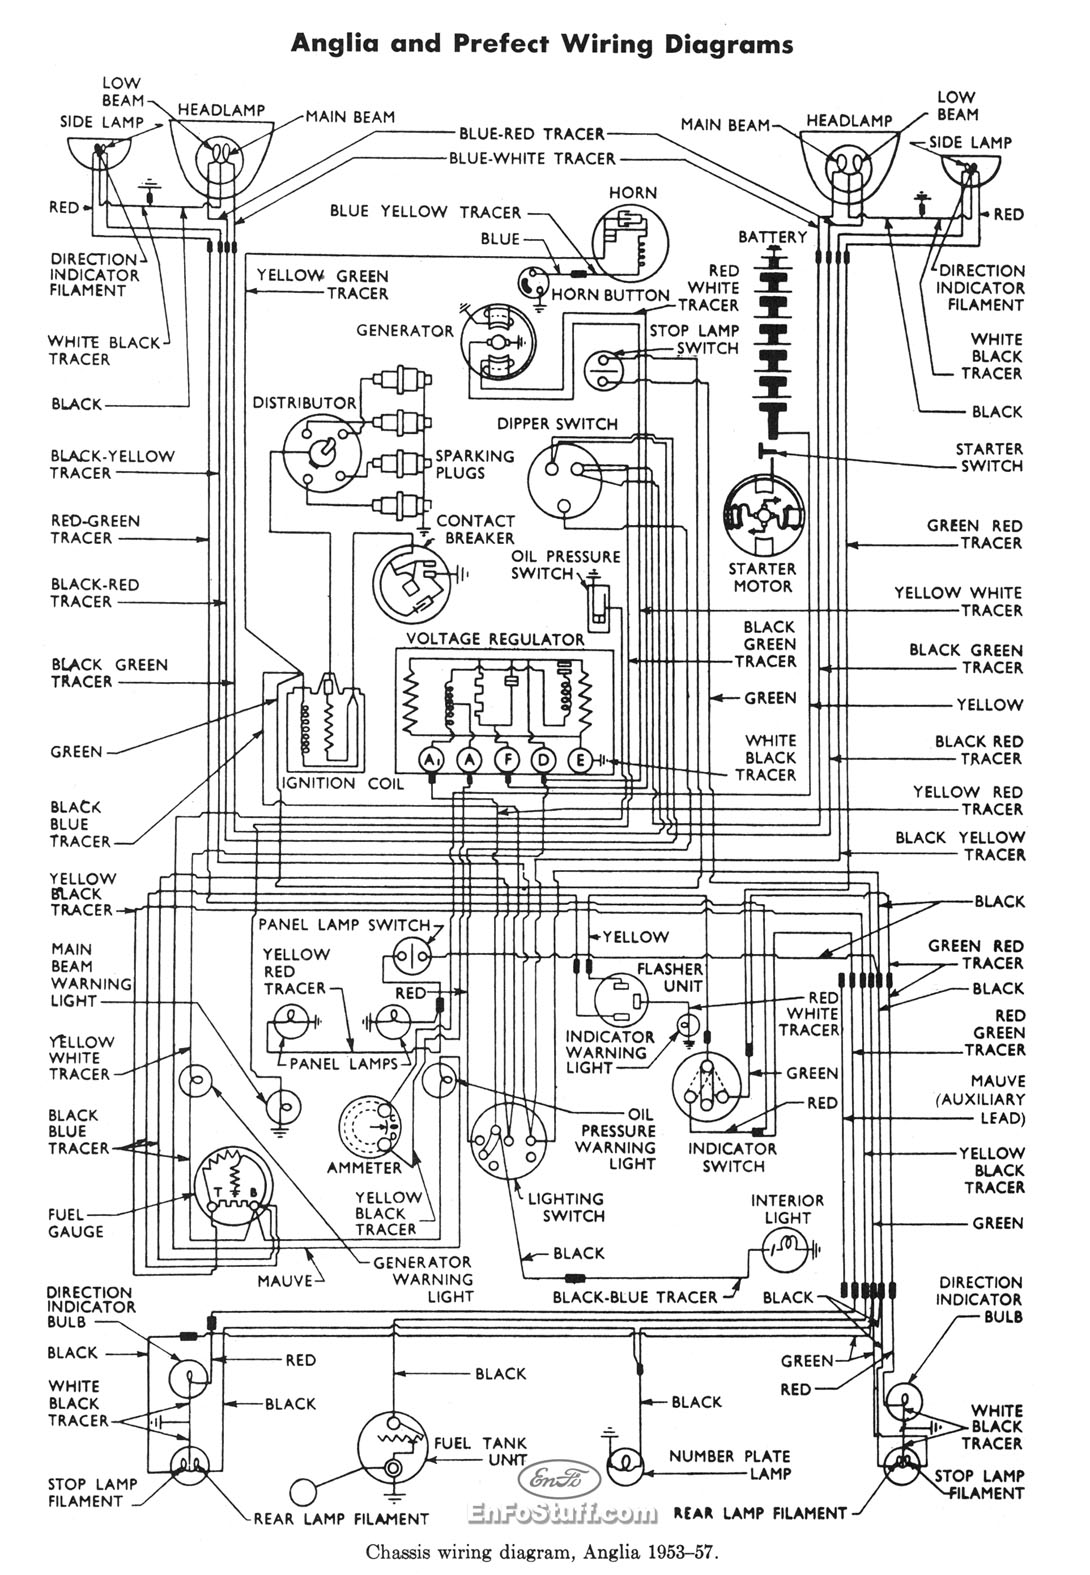 Ford F800 Wiring Schematic - Wiring Diagrams relax mile-lay -  mile-lay.quado.it